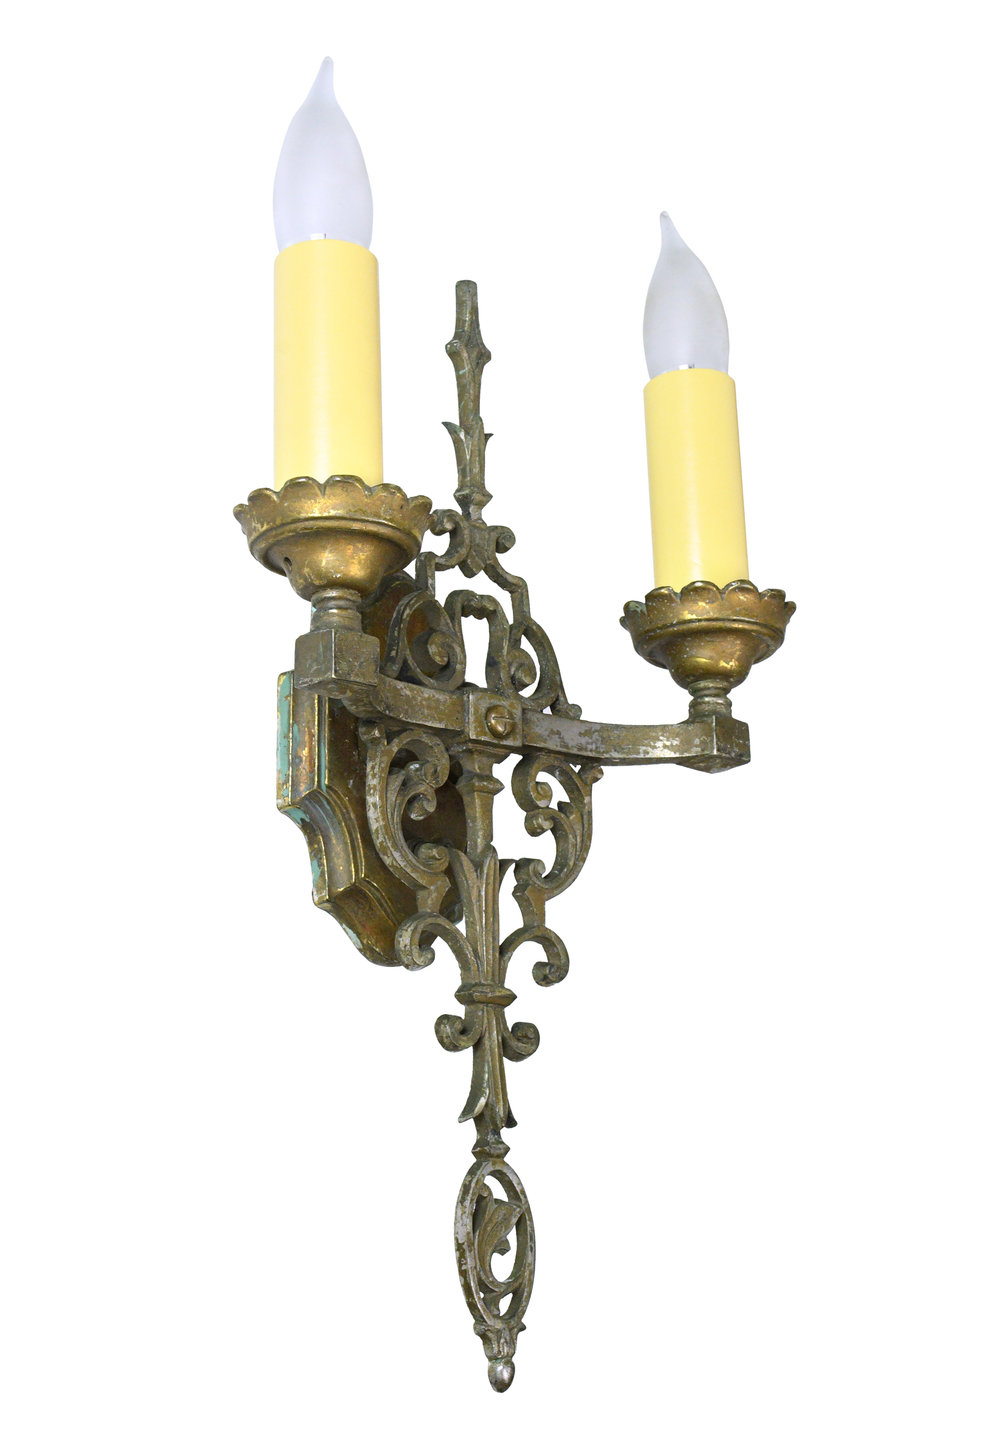 47854-brass-two-candle-sconce-angle-view.jpg